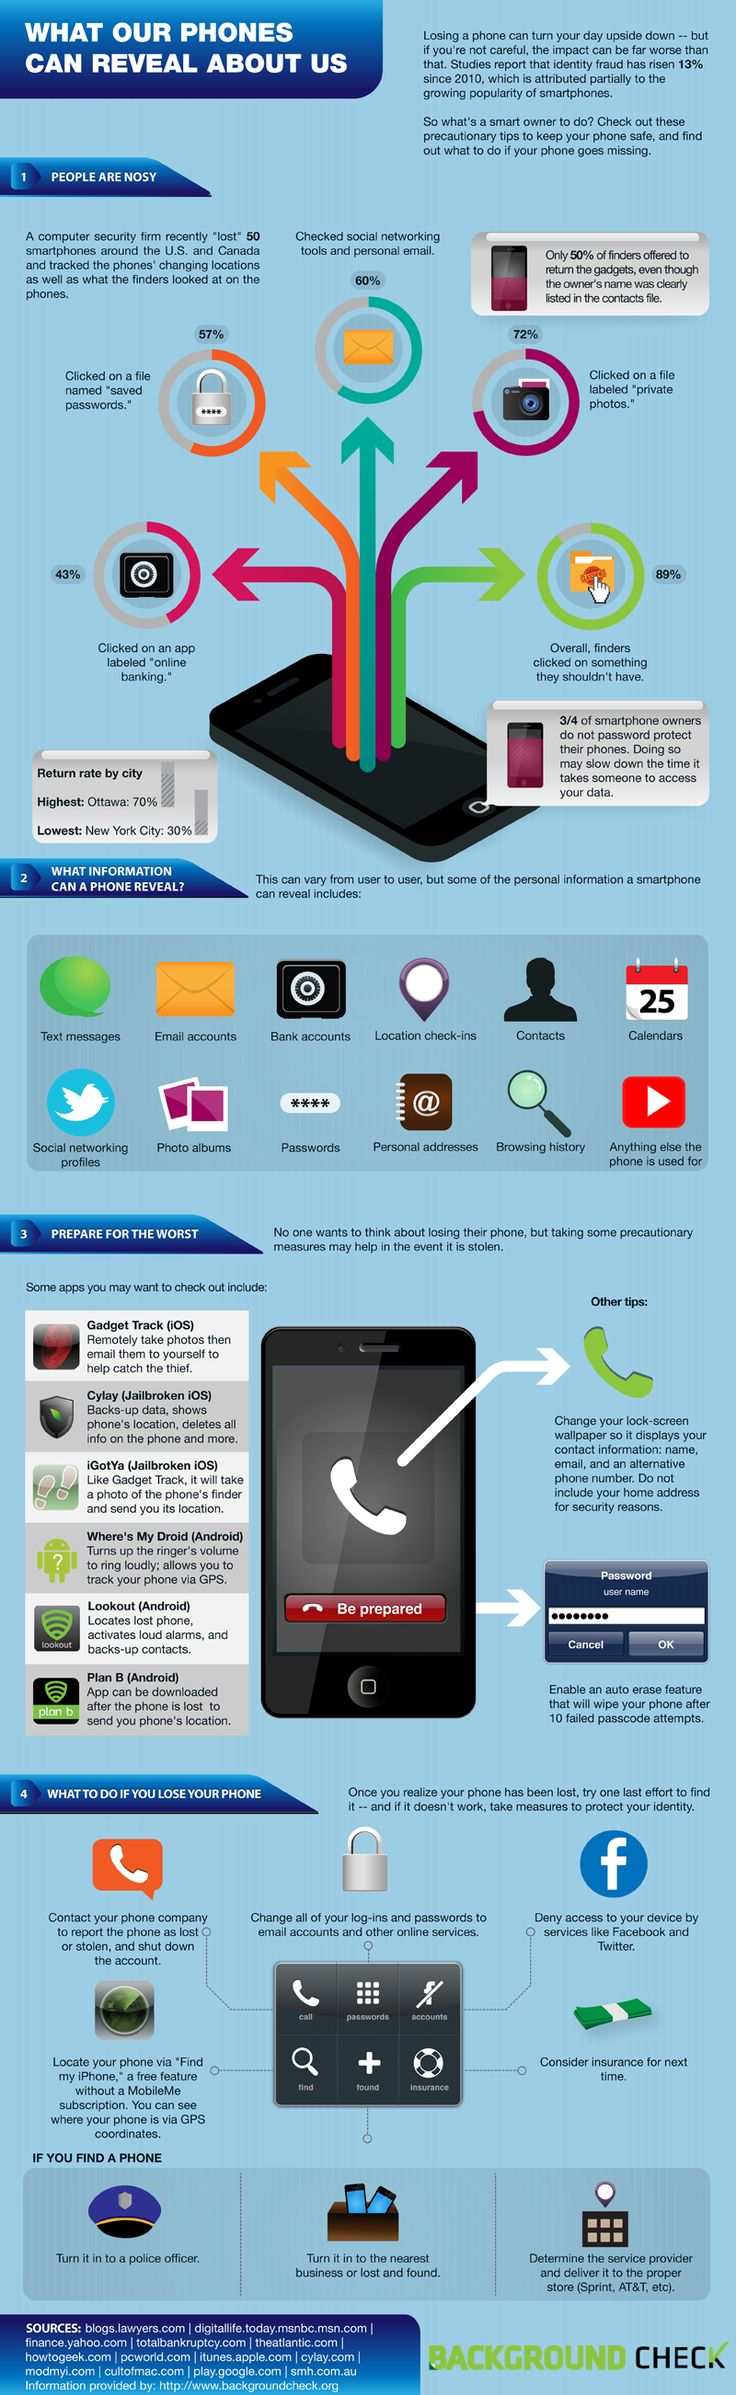 Smartphone Safety & Identity Theft #infographic